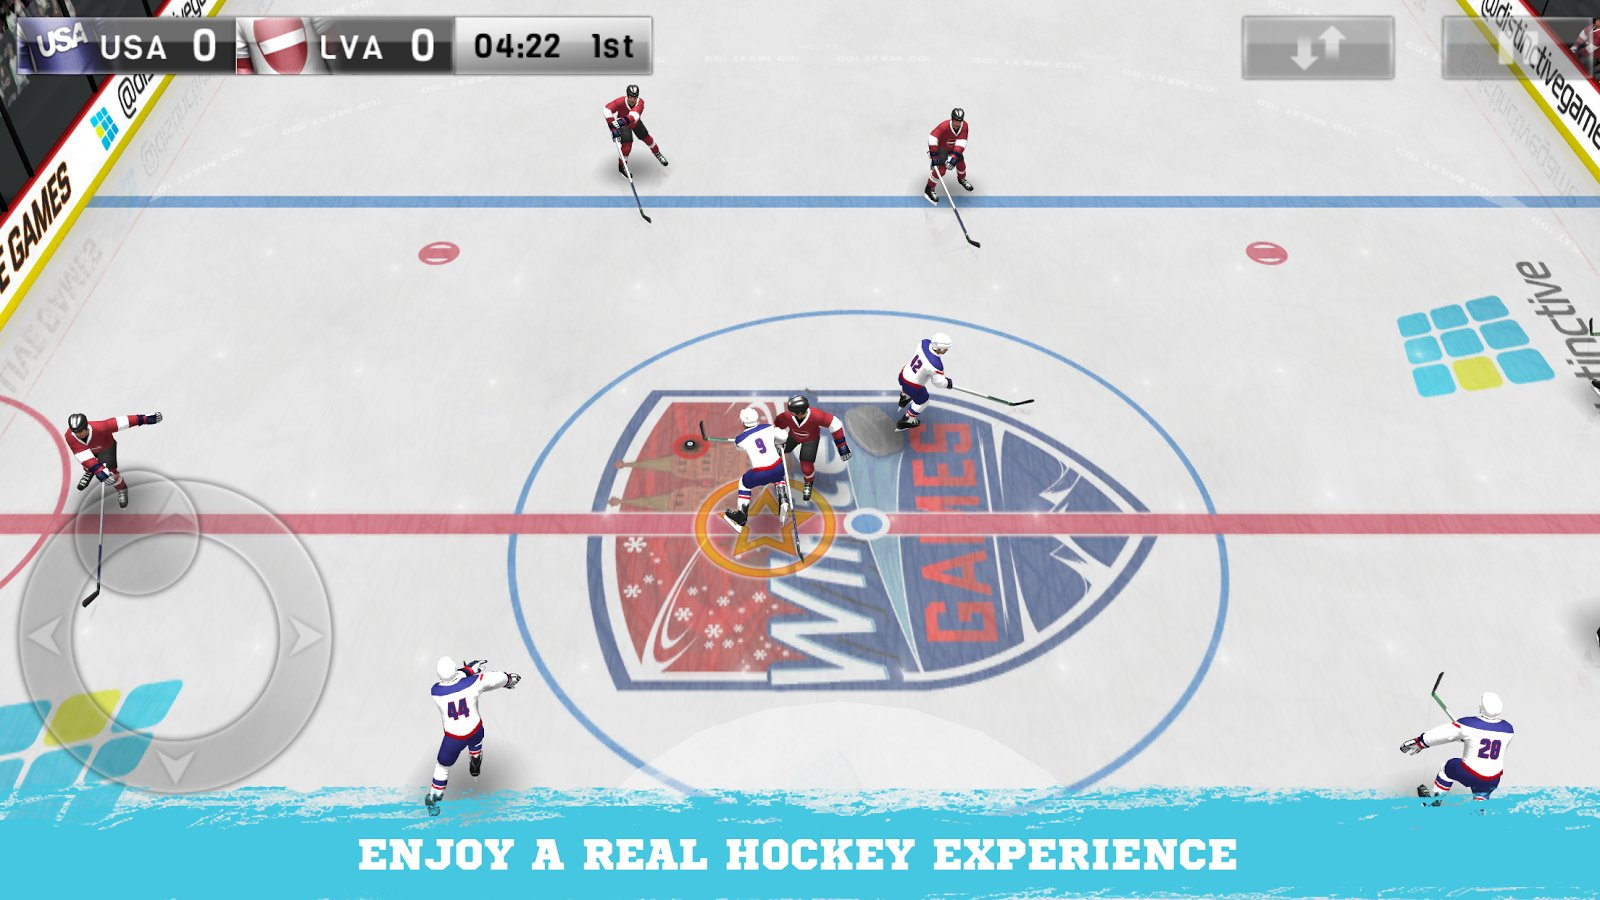 an analysis of the game of hockey in ice magic by matt christopher Play the largest selection of free online games at games on aolcom including puzzle games, card games, casino games, strategy games and many more.